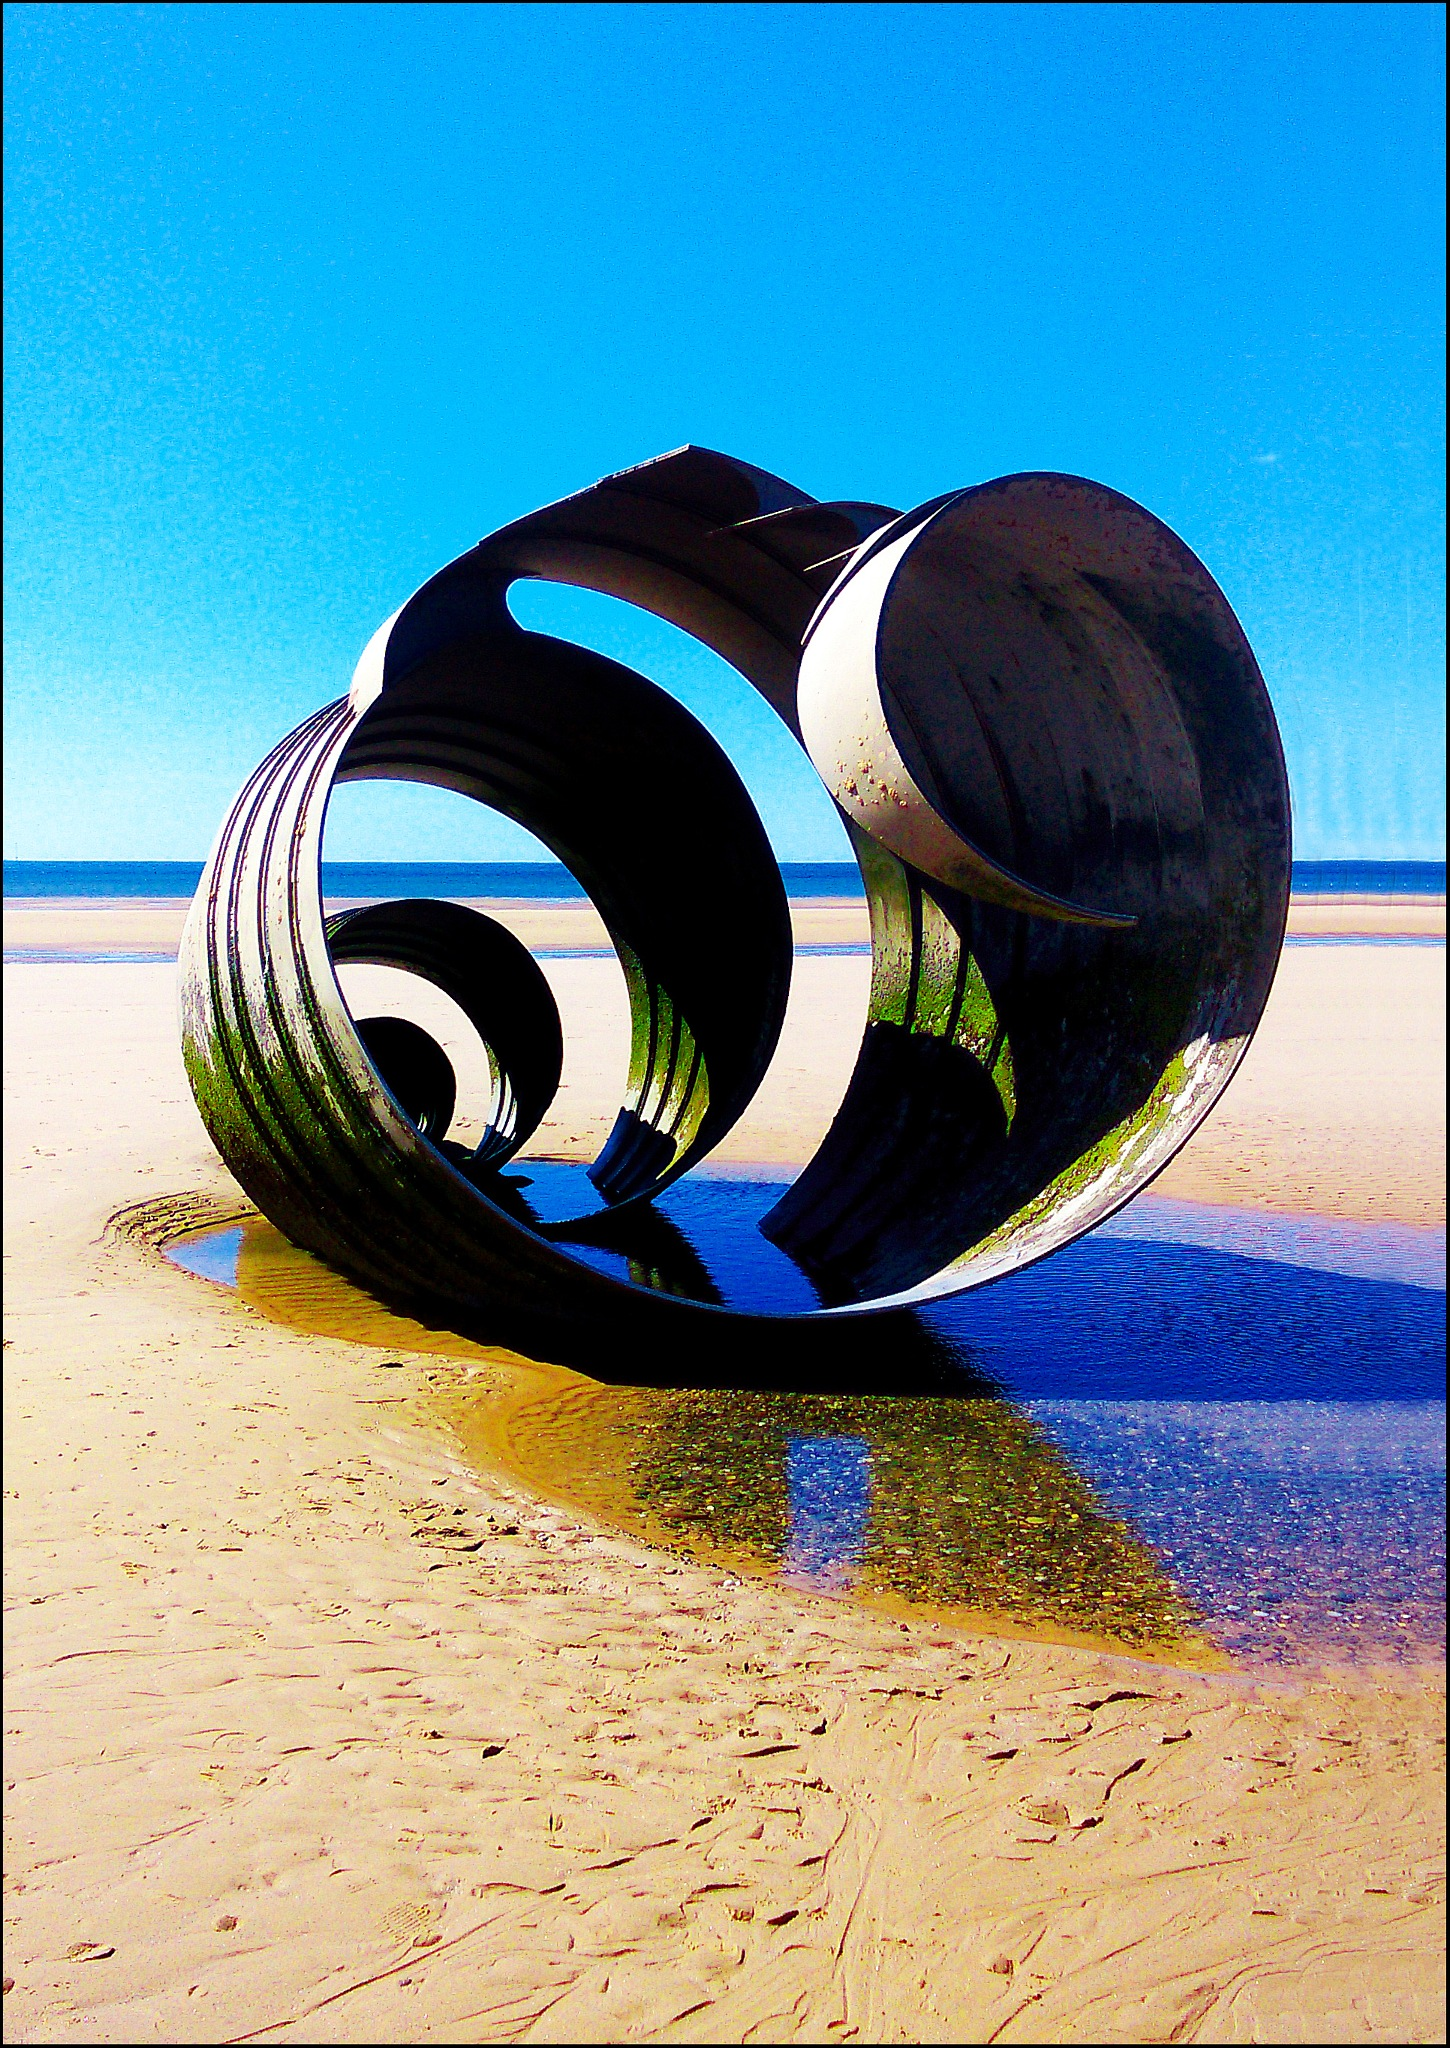 Sea Shell by TOZ